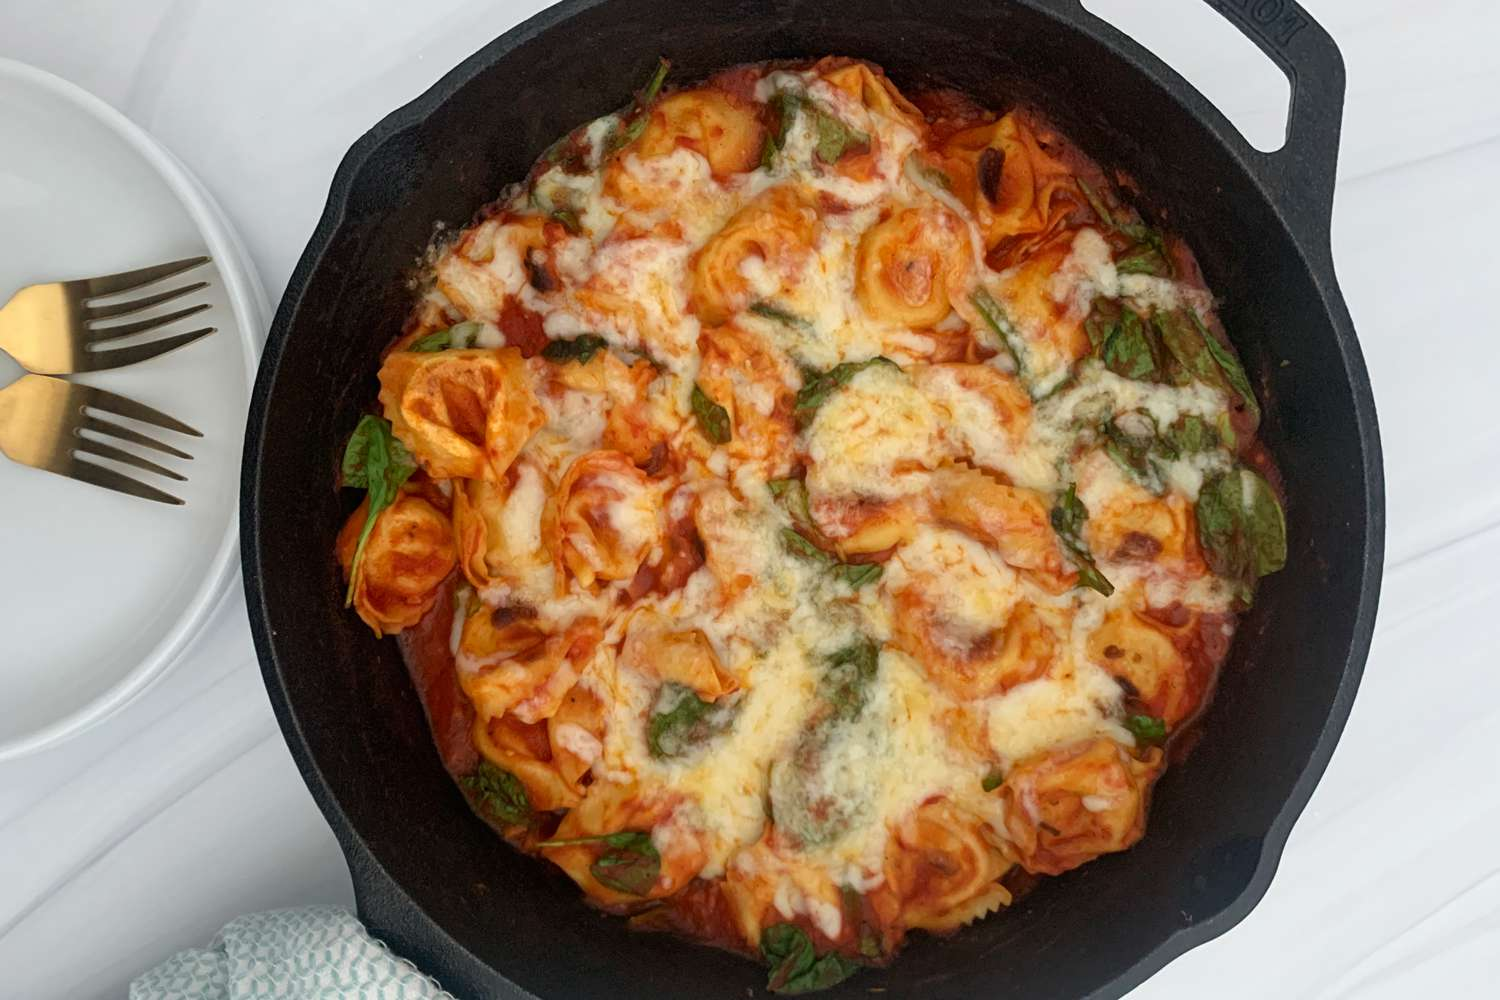 Dinnerly meal in skillet